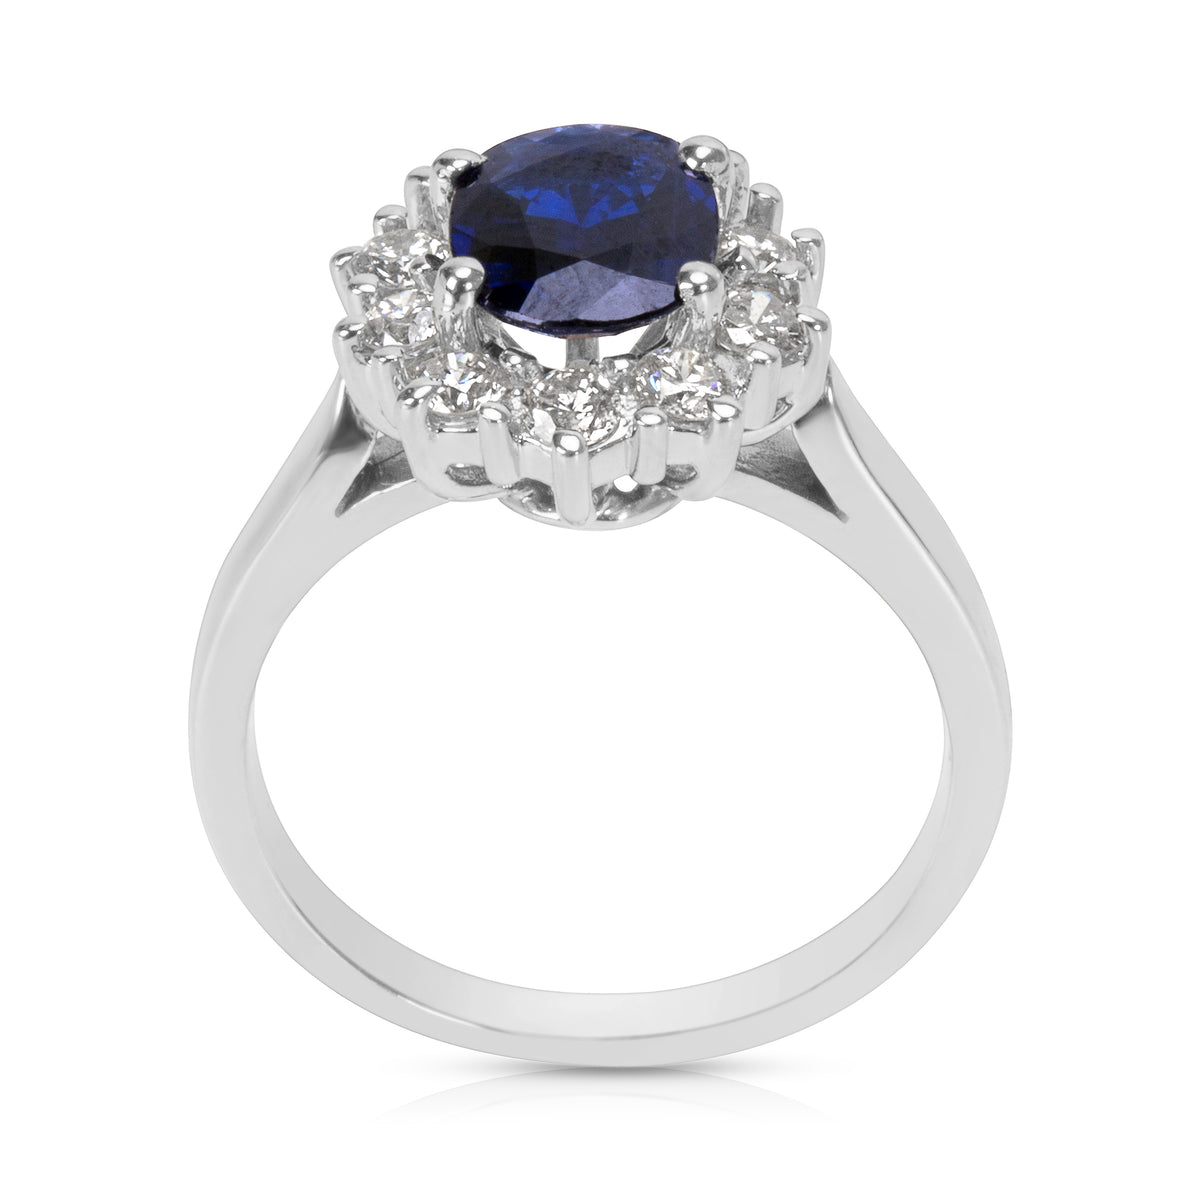 BRAND NEW Sapphire Center & Diamond Fashion Ring in 14K White Gold (0.50 CTW)